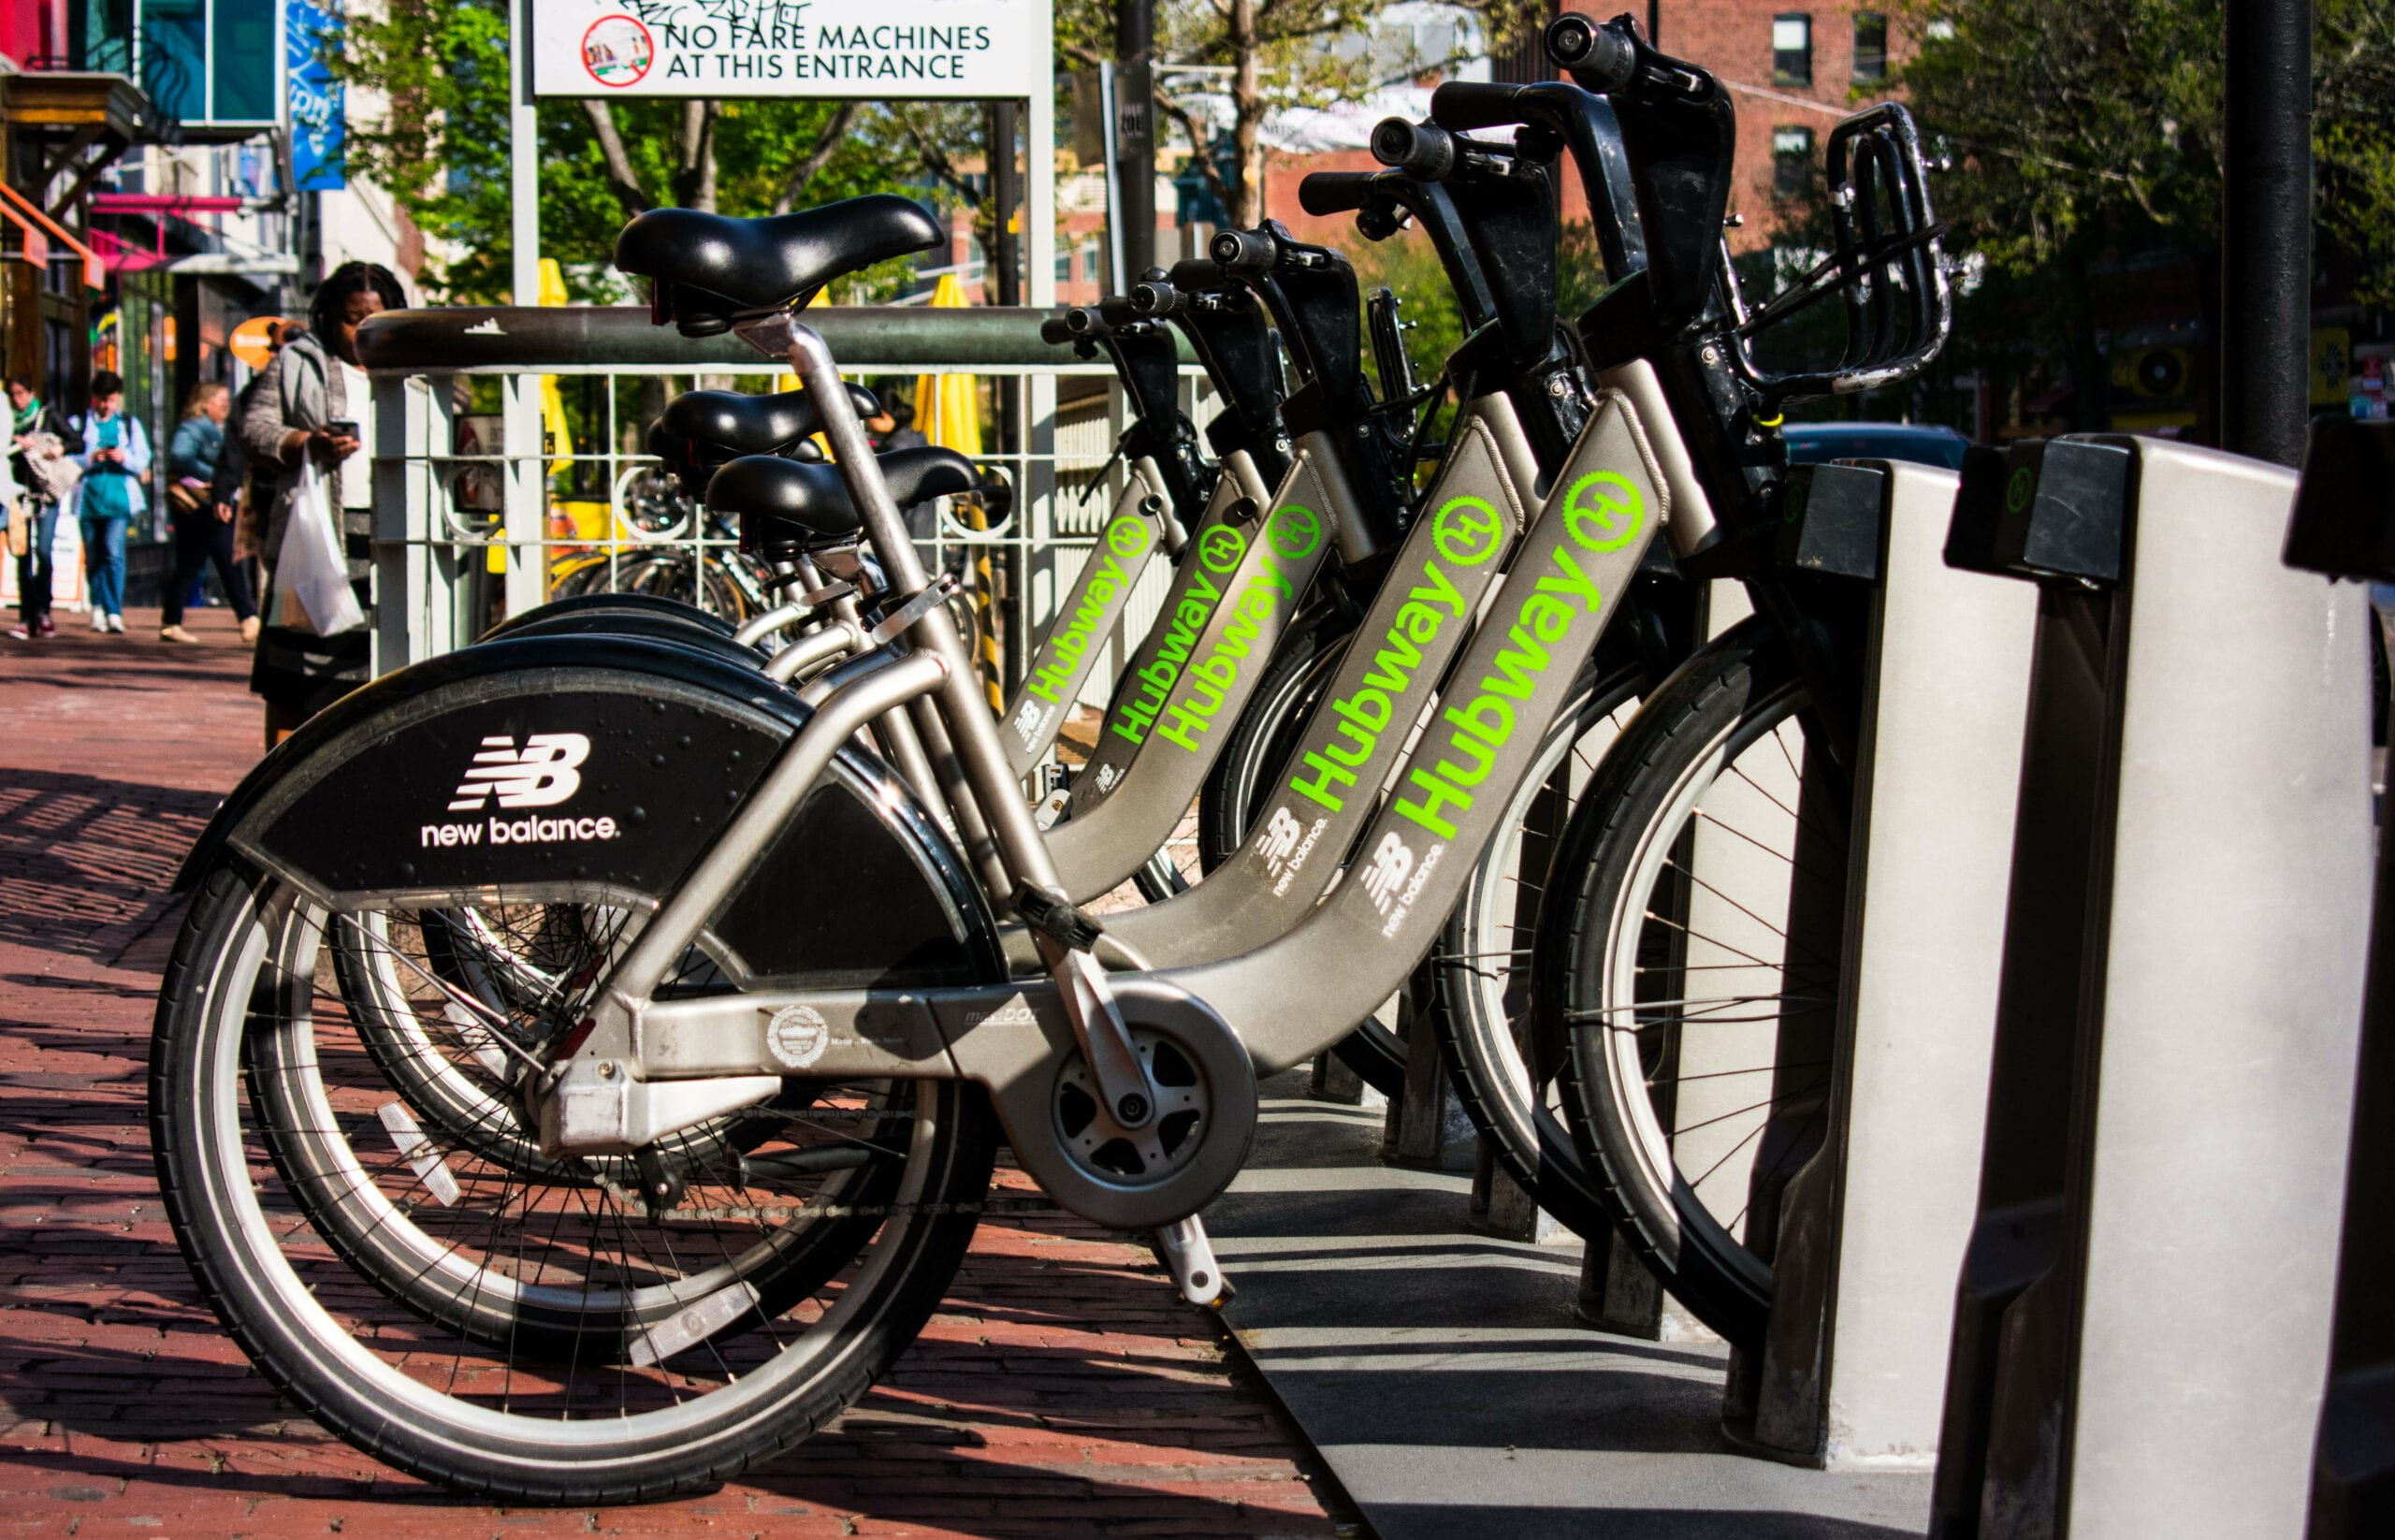 hubway bike sharing sql basics tutorial